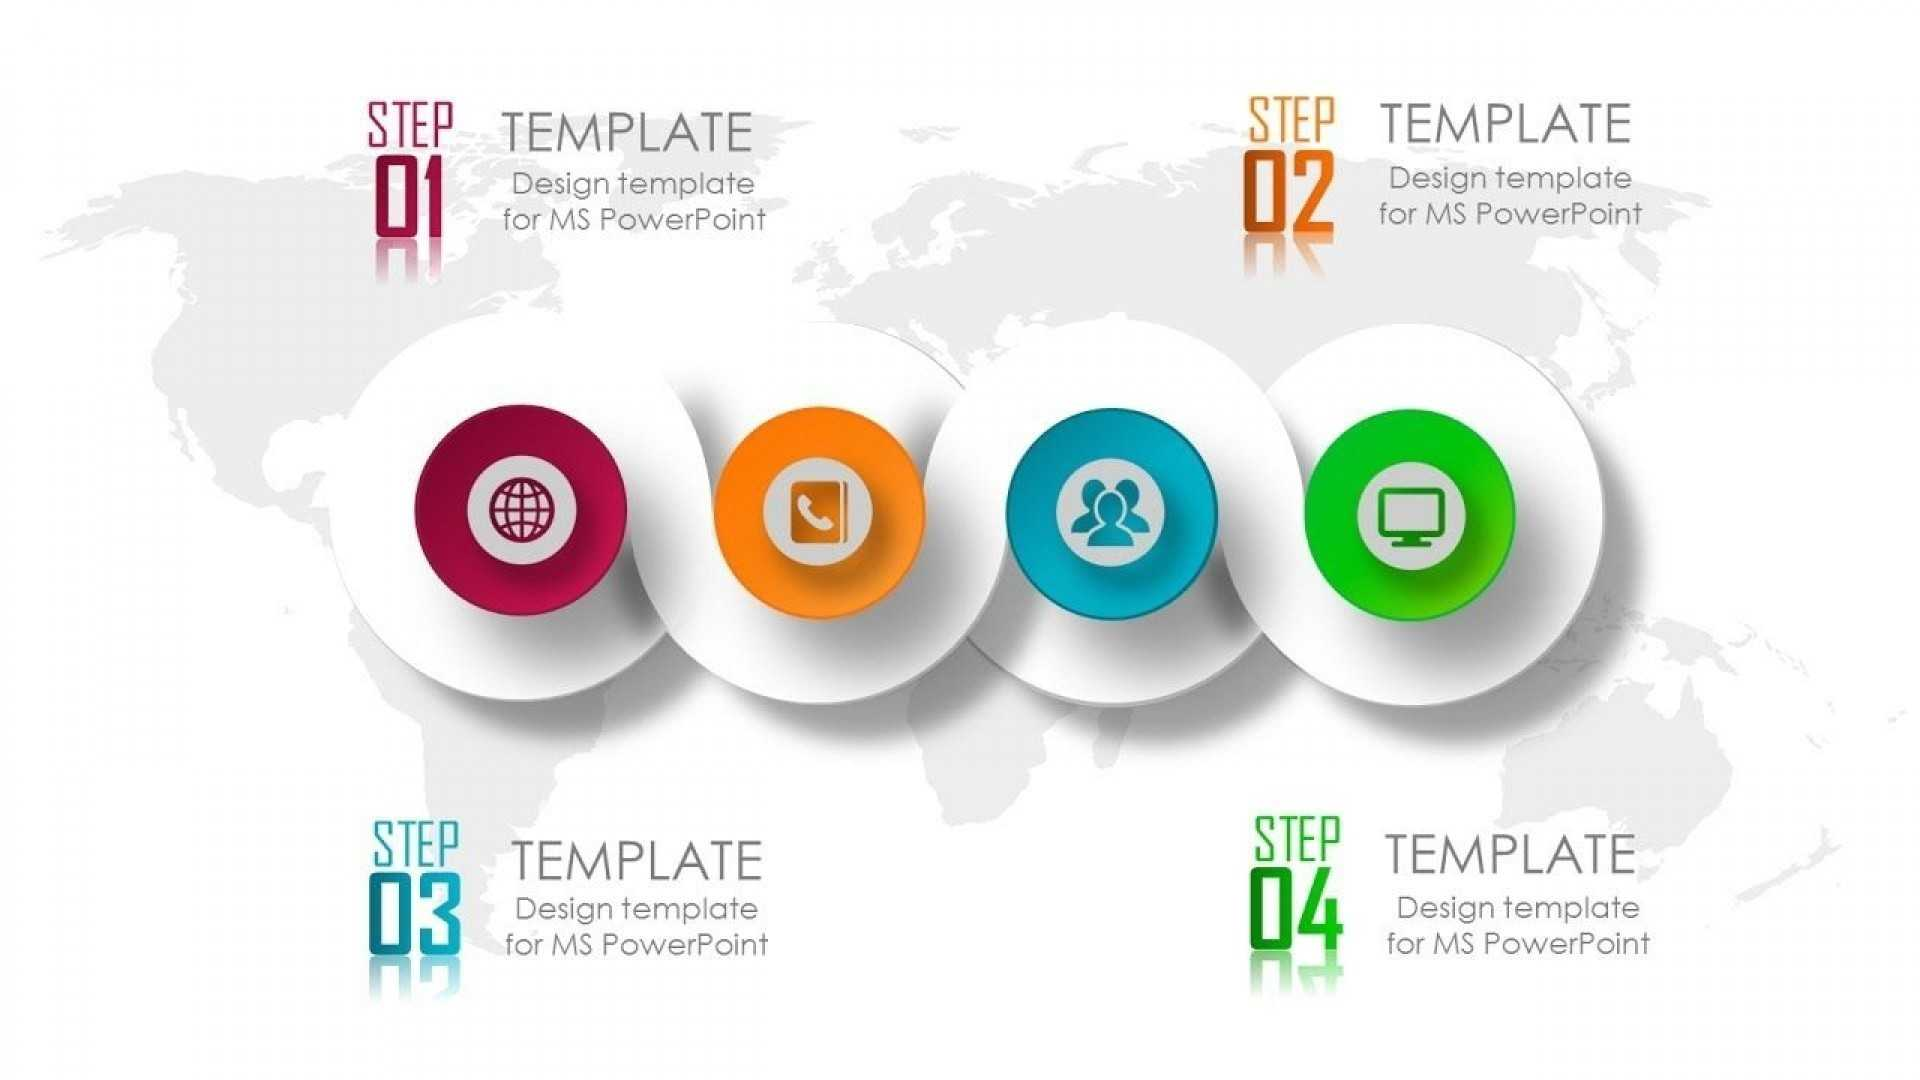 019 Free Downloadable Powerpoint Templates Animated Template Throughout Powerpoint Animation Templates Free Download